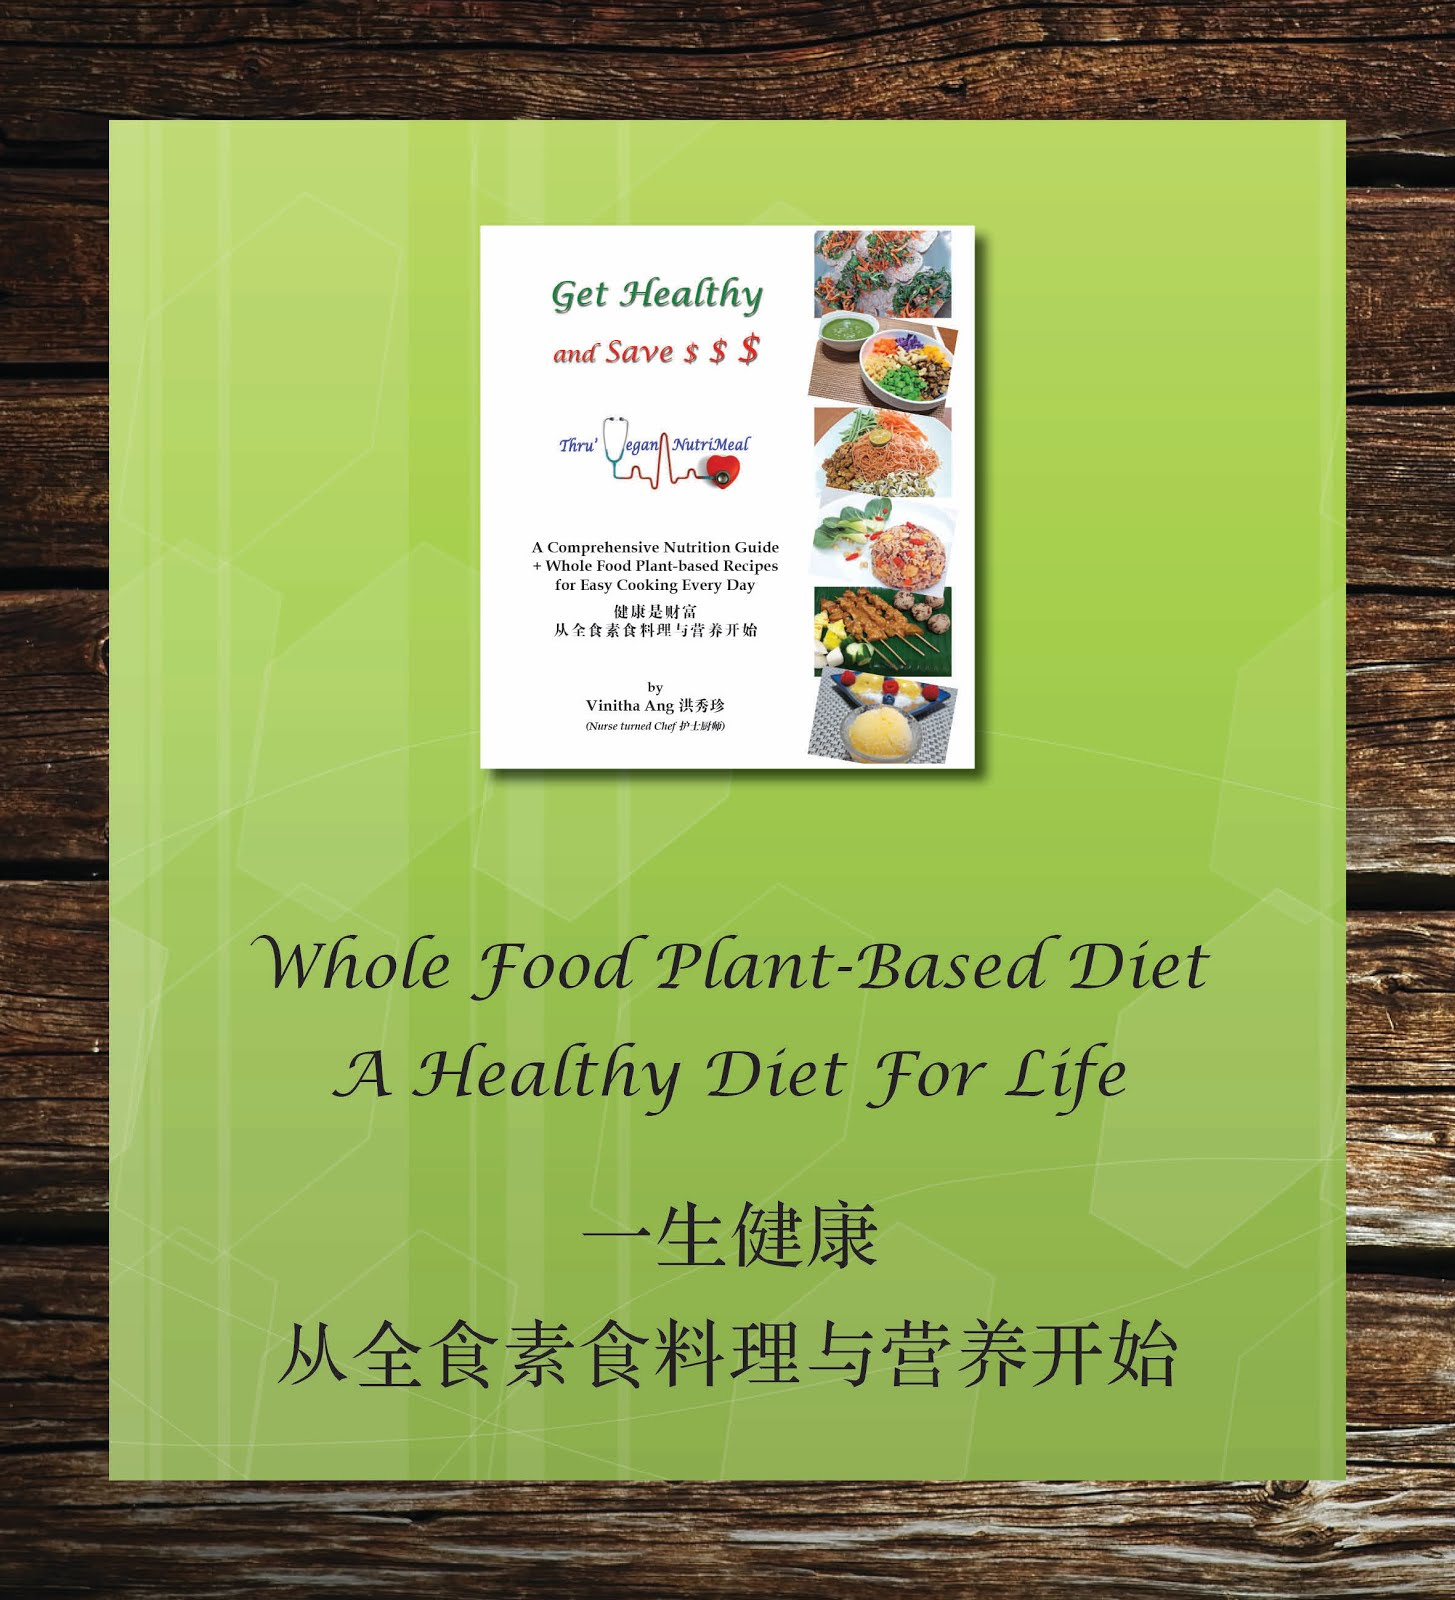 Get Healthy and Save $$$ thru Vegan NutriMeal - Title page